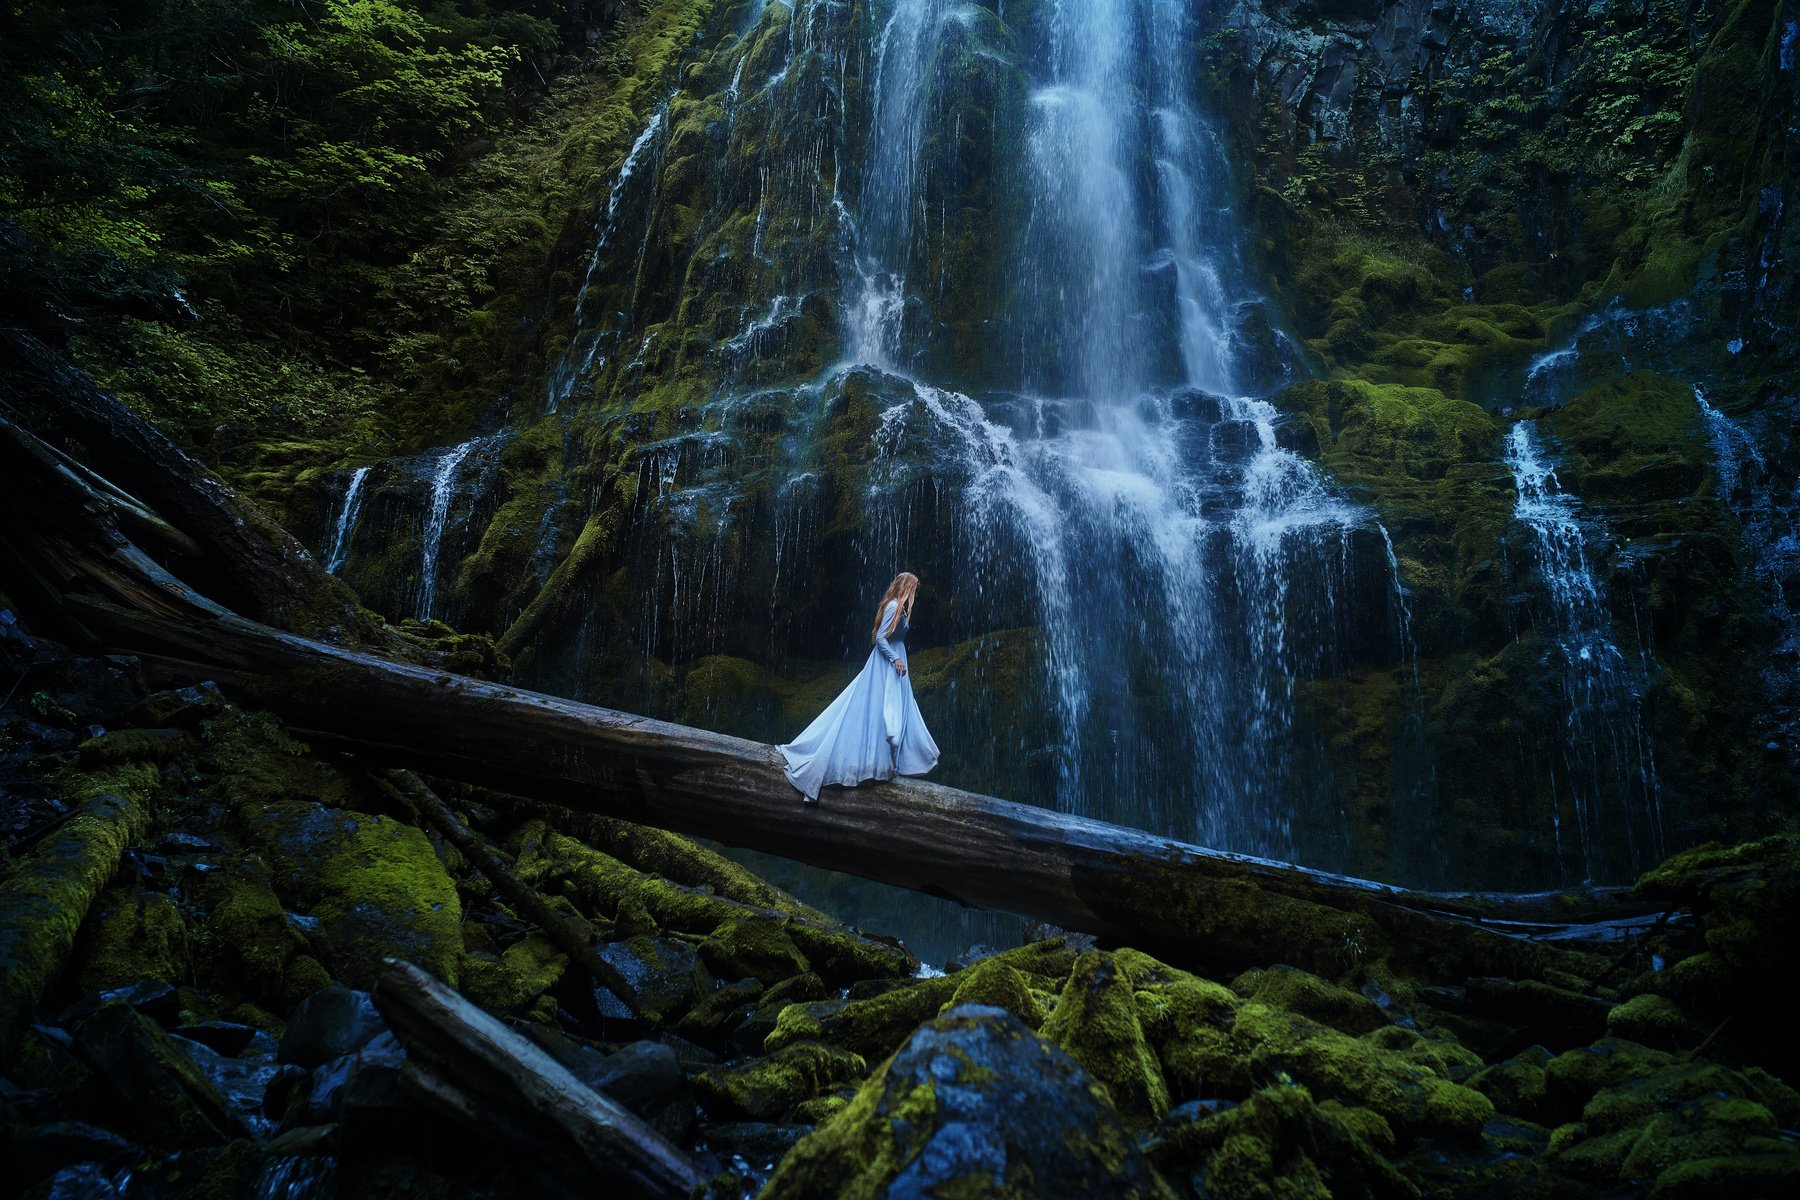 Women - Mood  Blue Dress Girl Waterfall Woman Forest Log Wallpaper